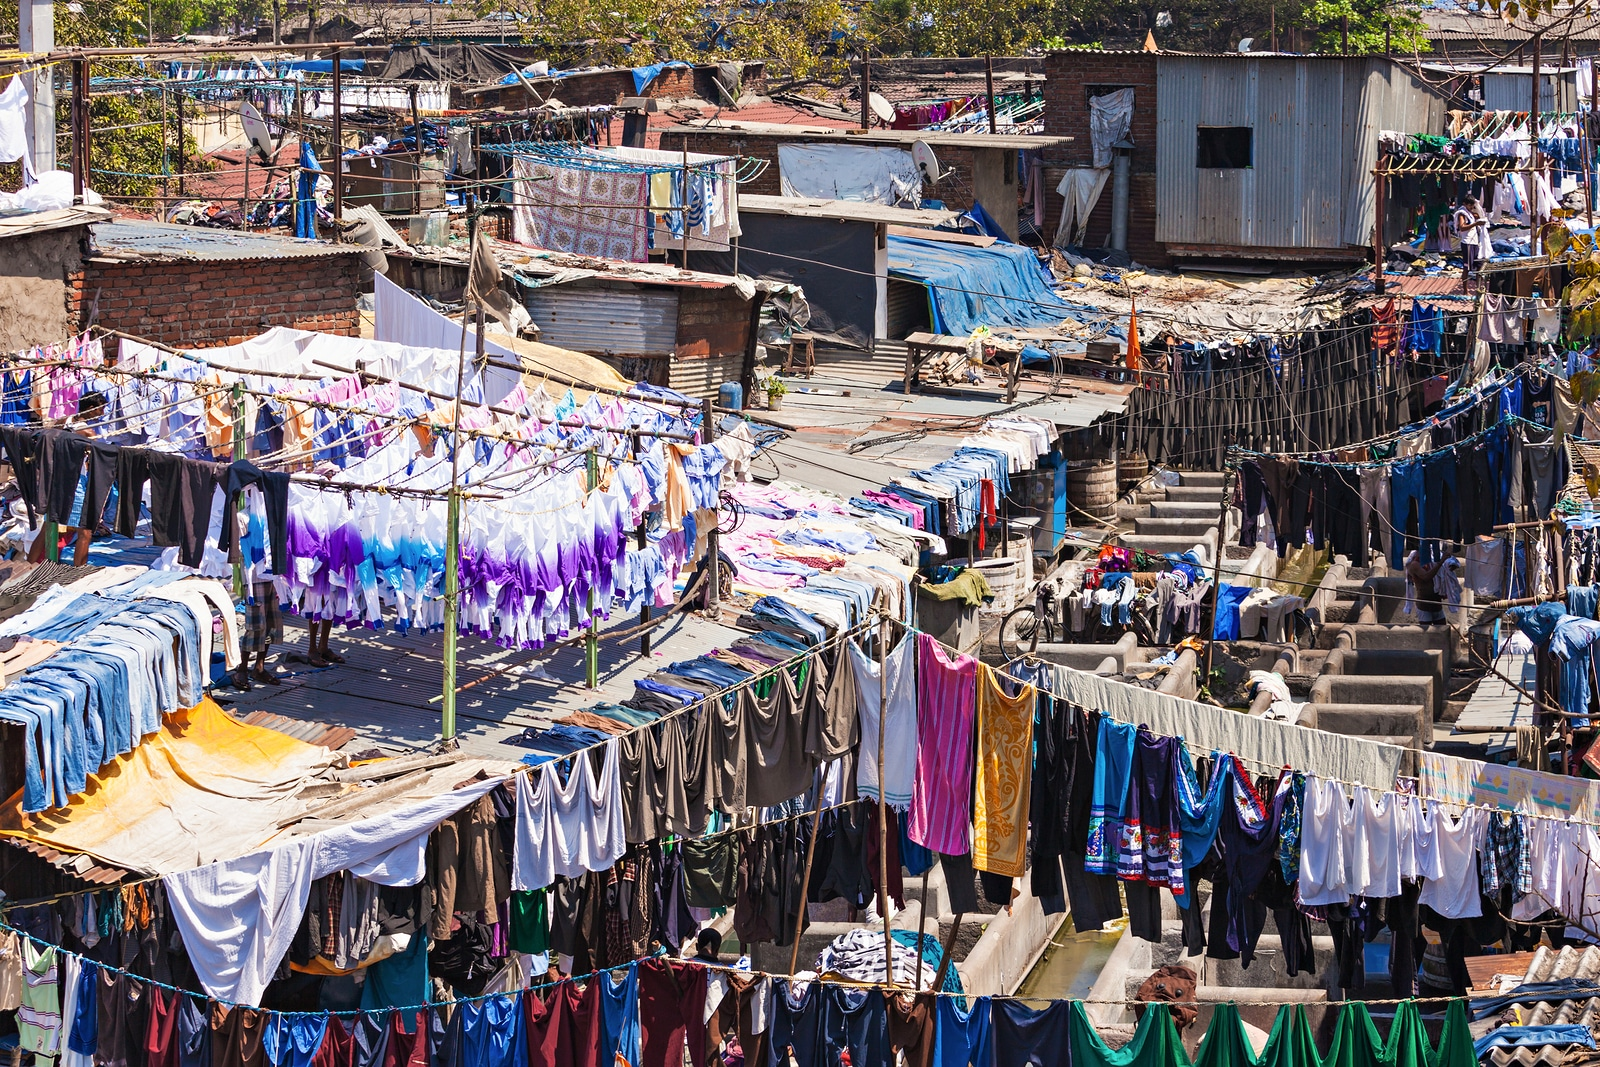 Dhobi Ghat Is A Well Known Open Air Laundromat In Mumbai, India